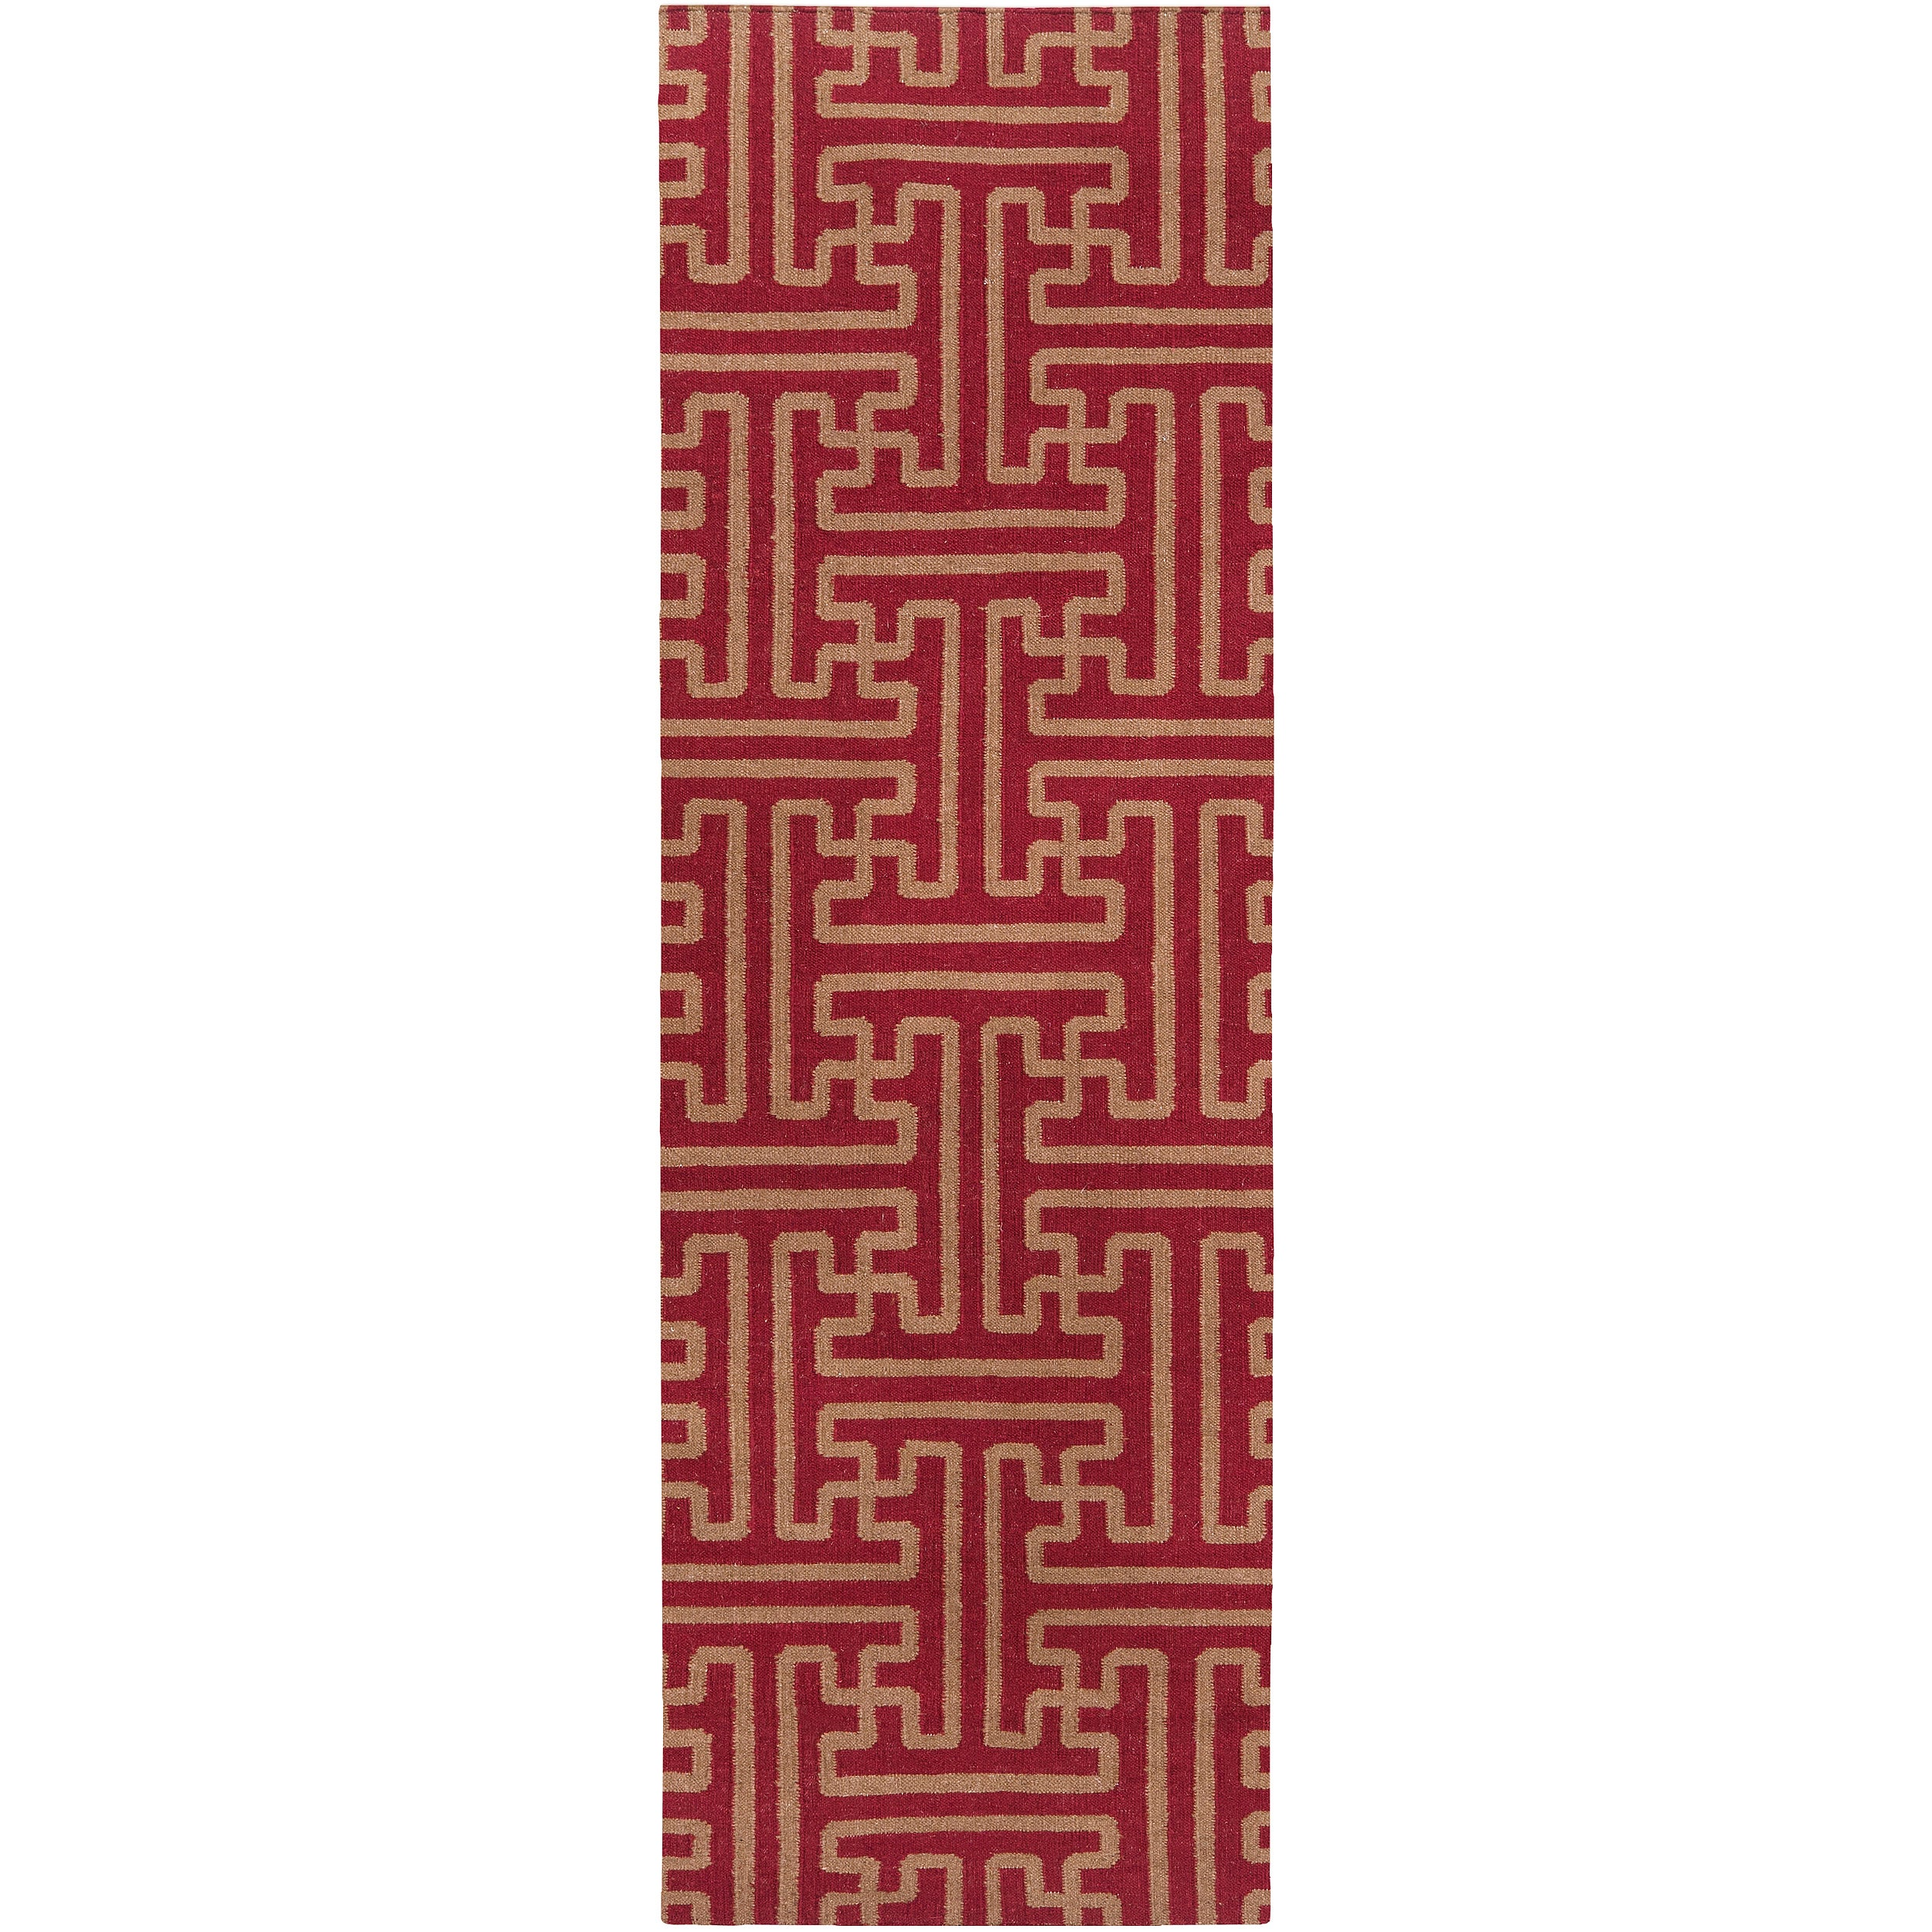 Hand-woven Red Queens Bay Wool Area Rug (2'6 x 8')